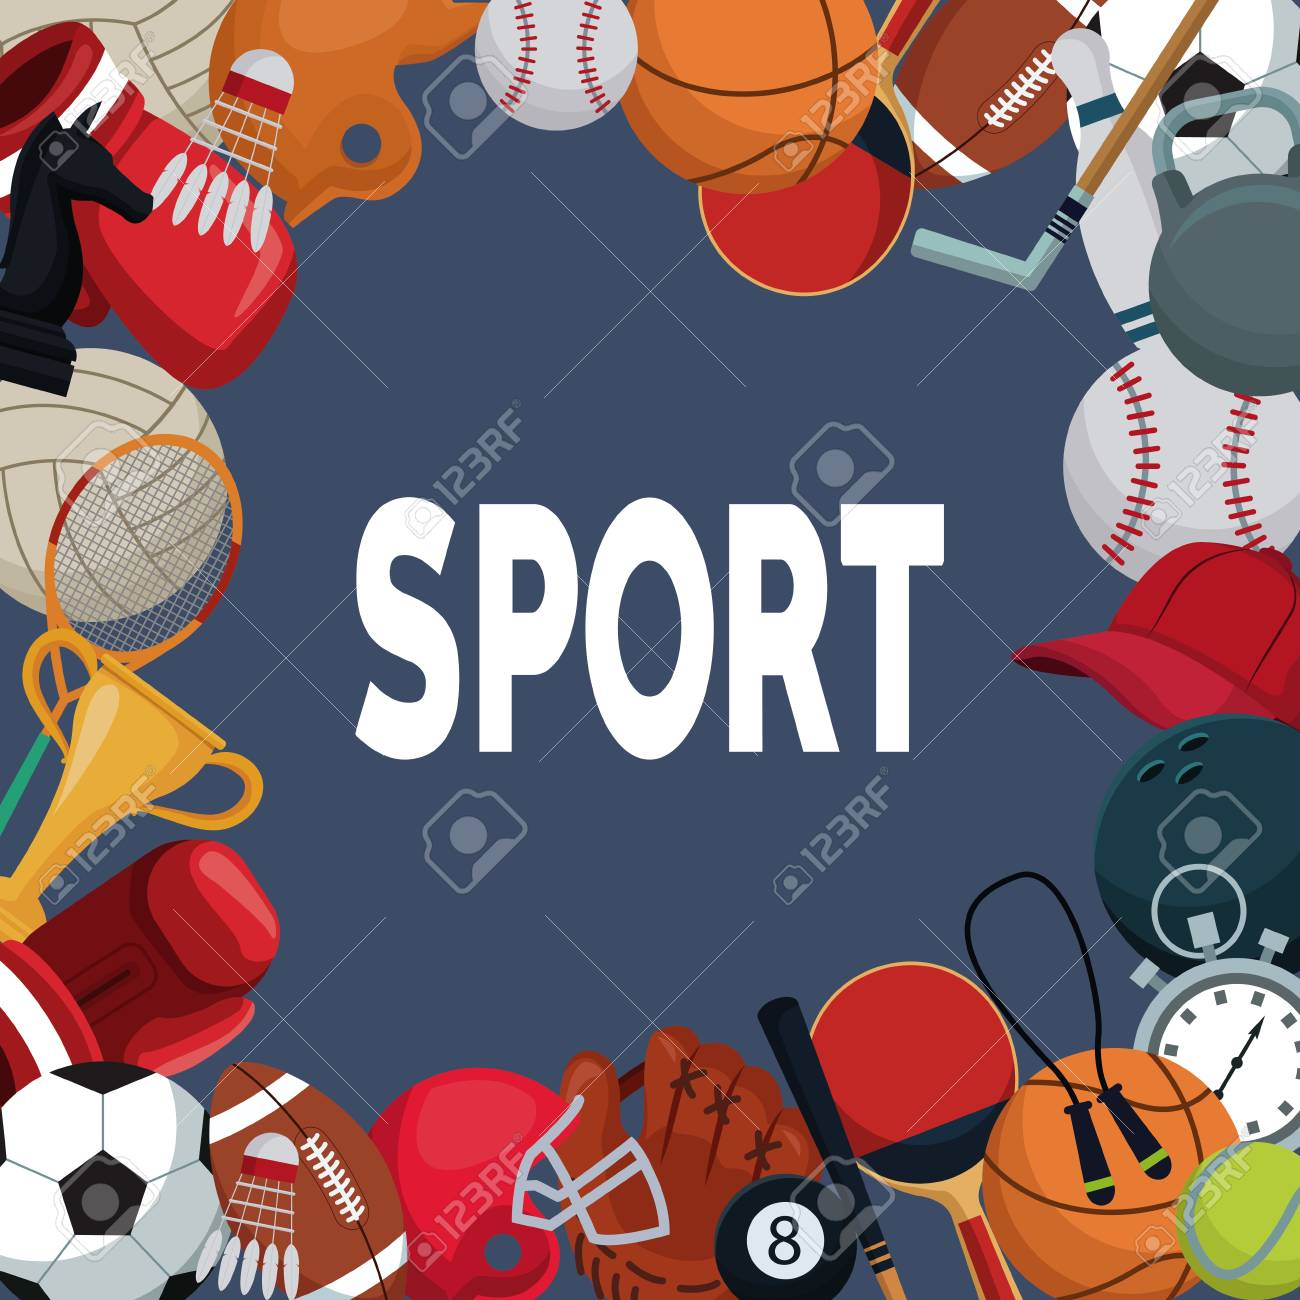 Color Background With Border Of Elements Sport Vector Illustration Royalty Free Cliparts Vectors And Stock Illustration Image 83616518